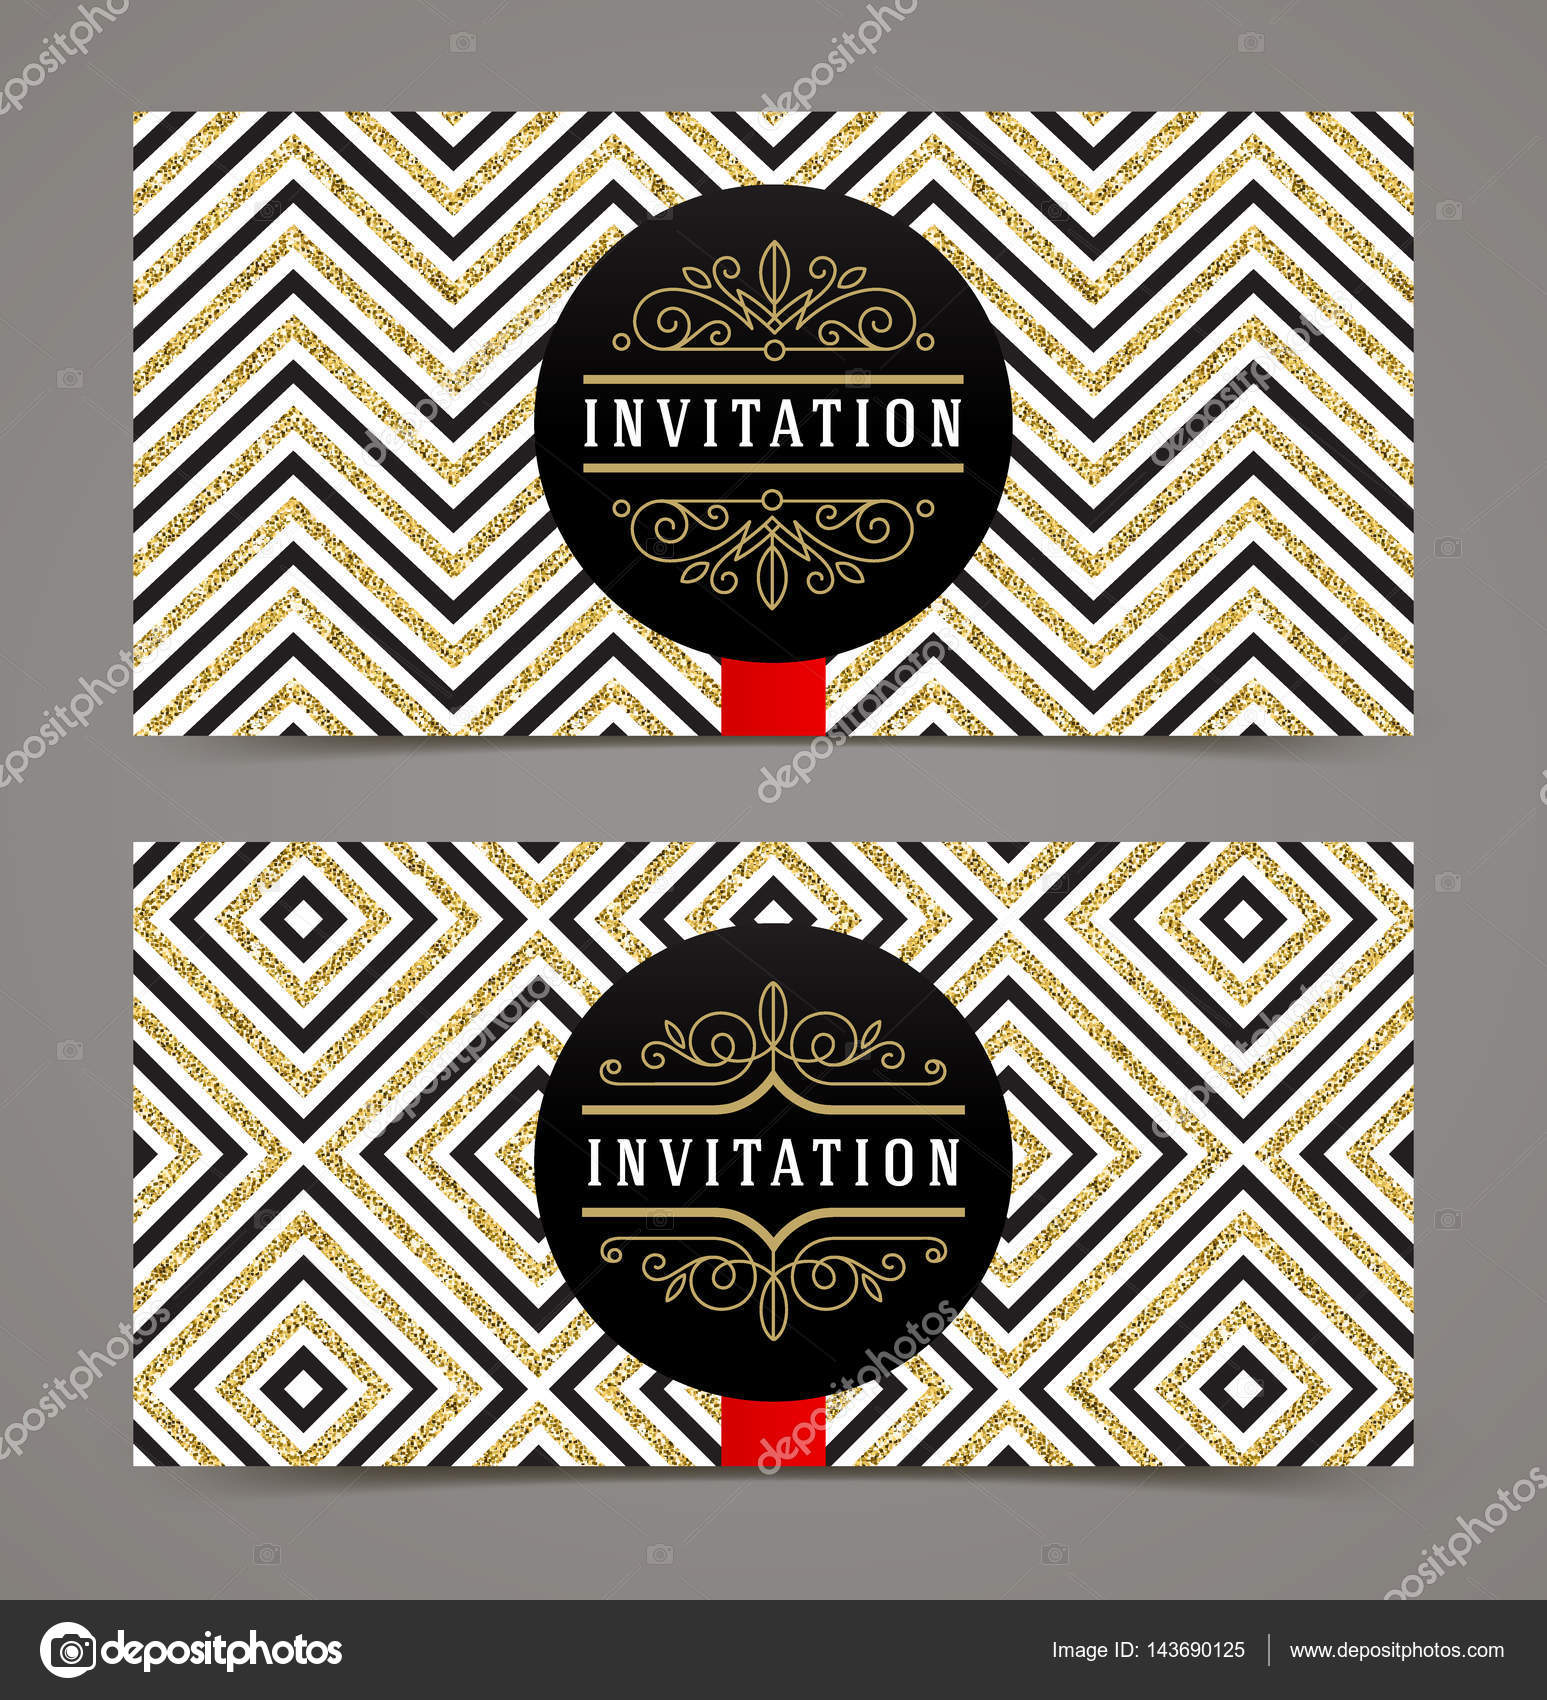 Vector template design for invitation black space for text on a vector template design for invitation black space for text on a glitter gold geometric background stopboris Image collections